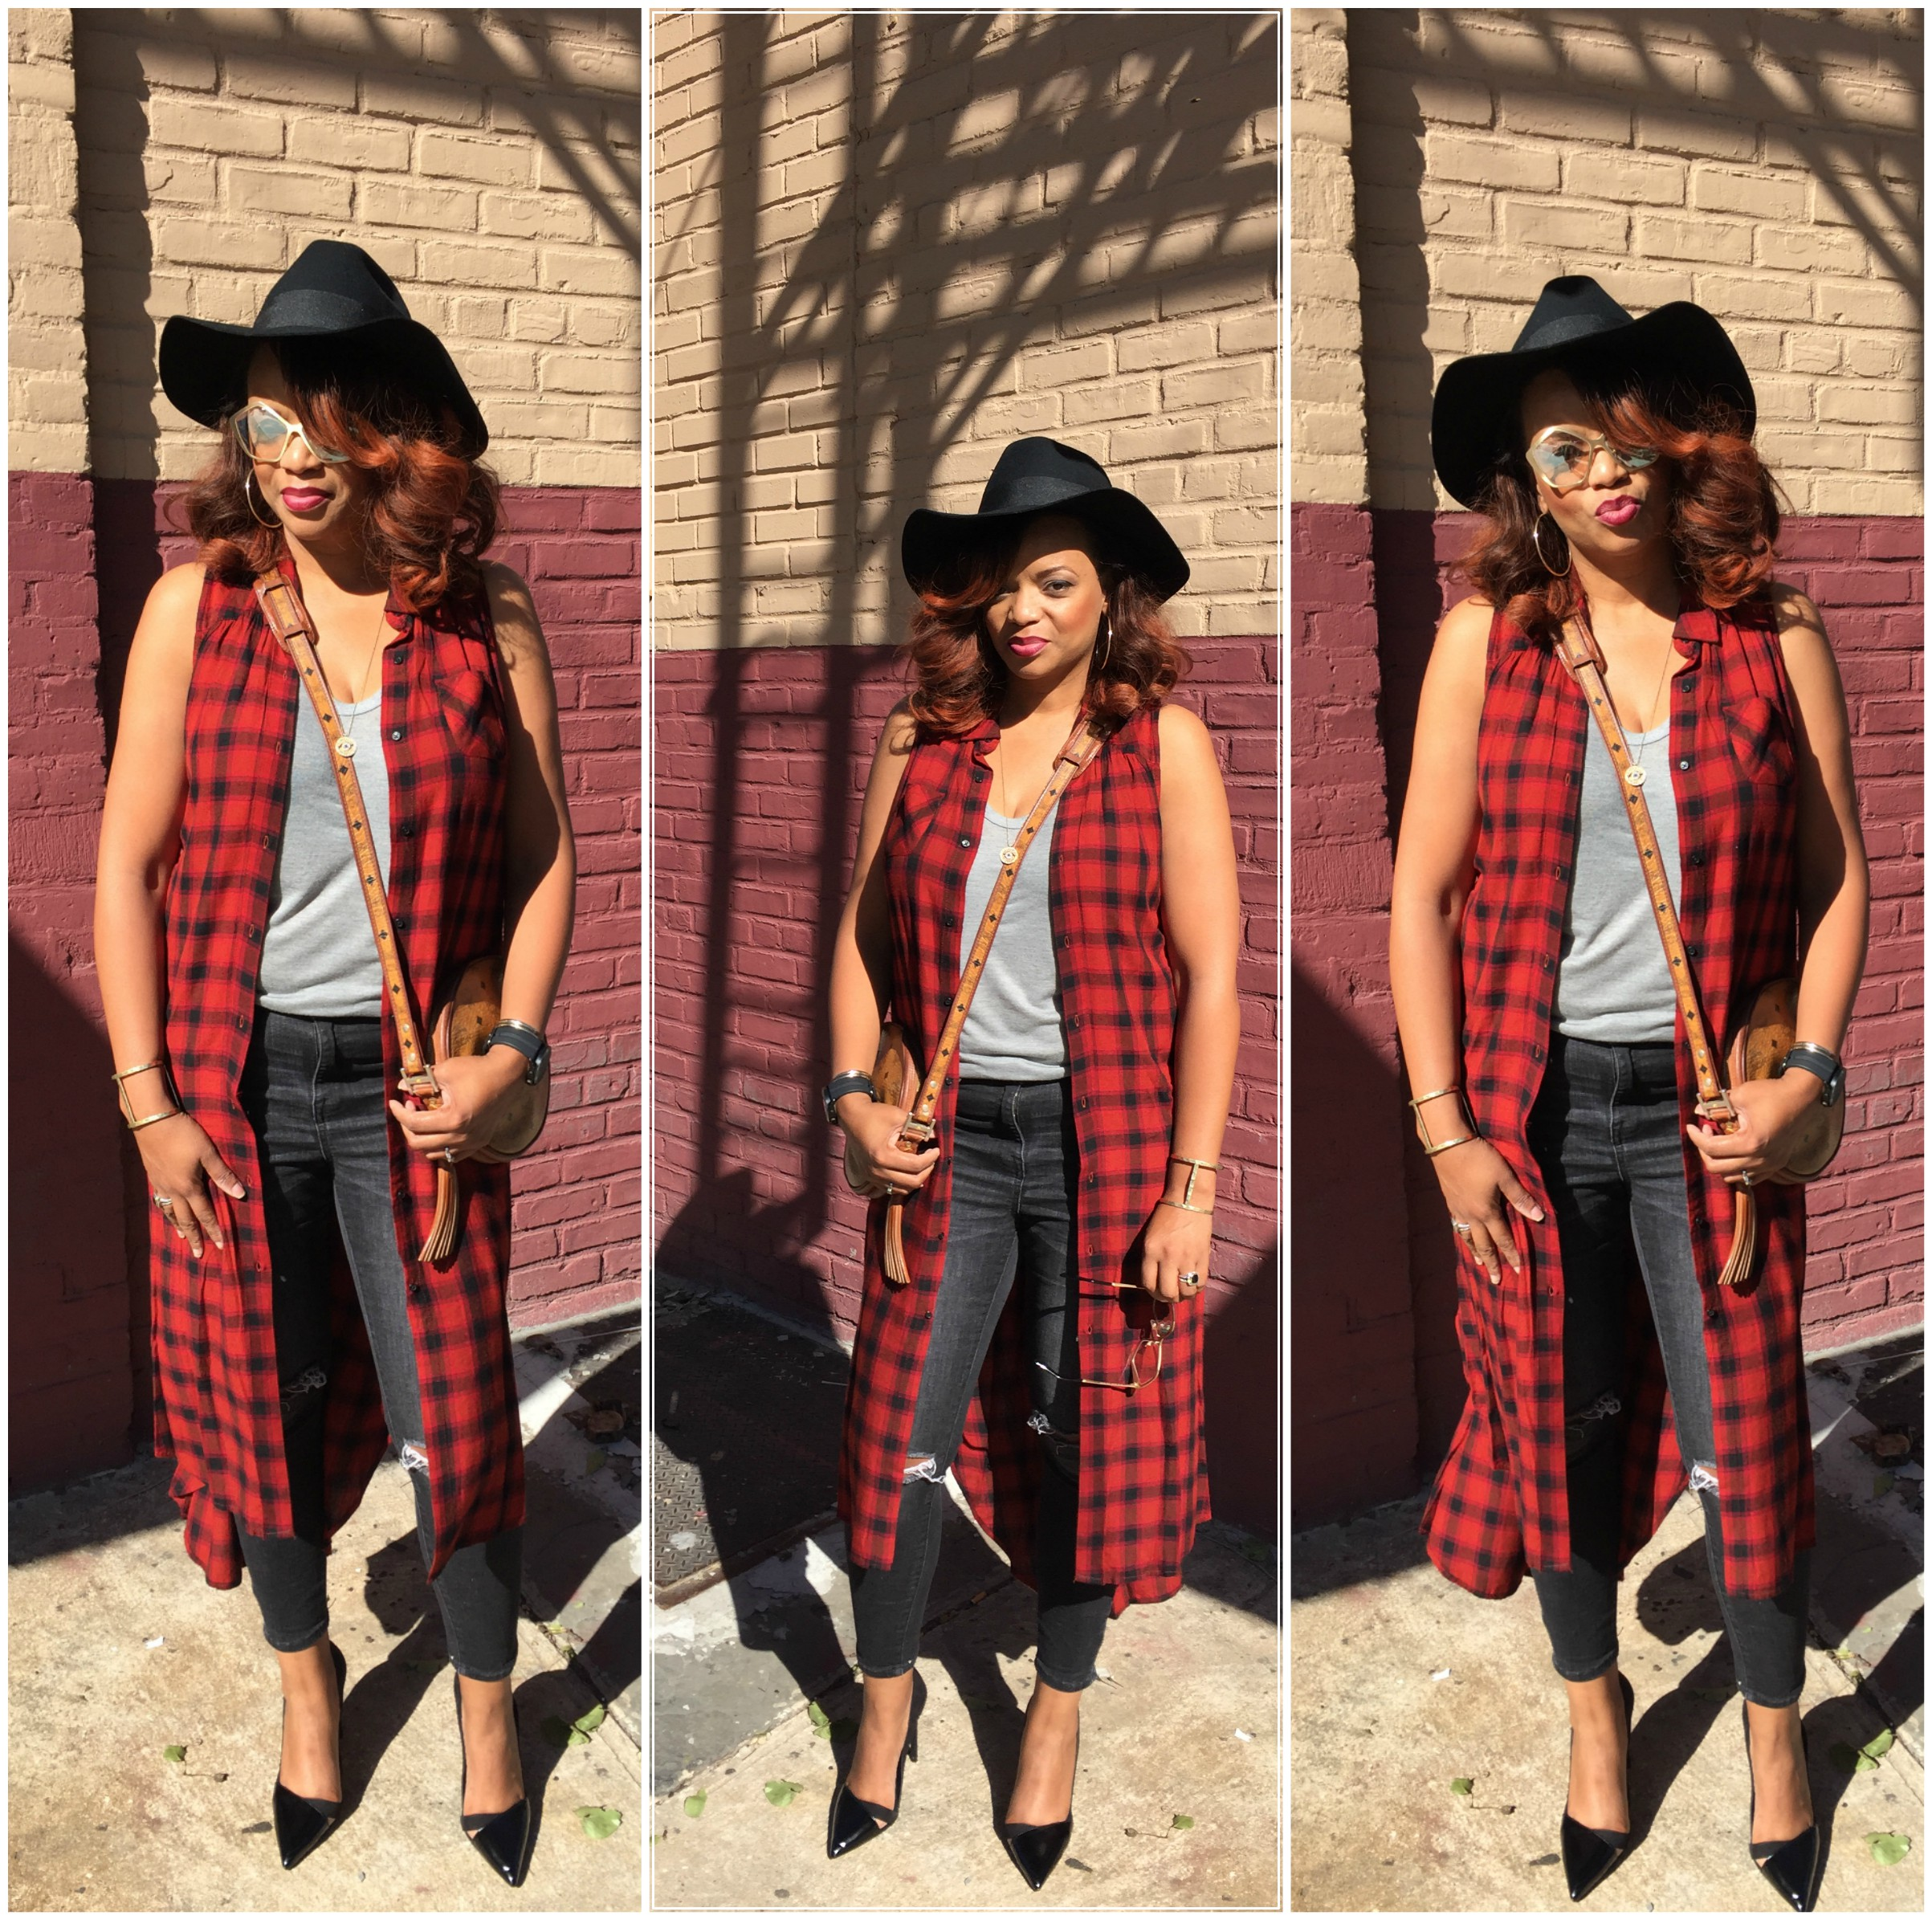 How about my #SybilStreetSTYLe X #Targetstyle featuring Fall's most popular plaid!!! Love Target